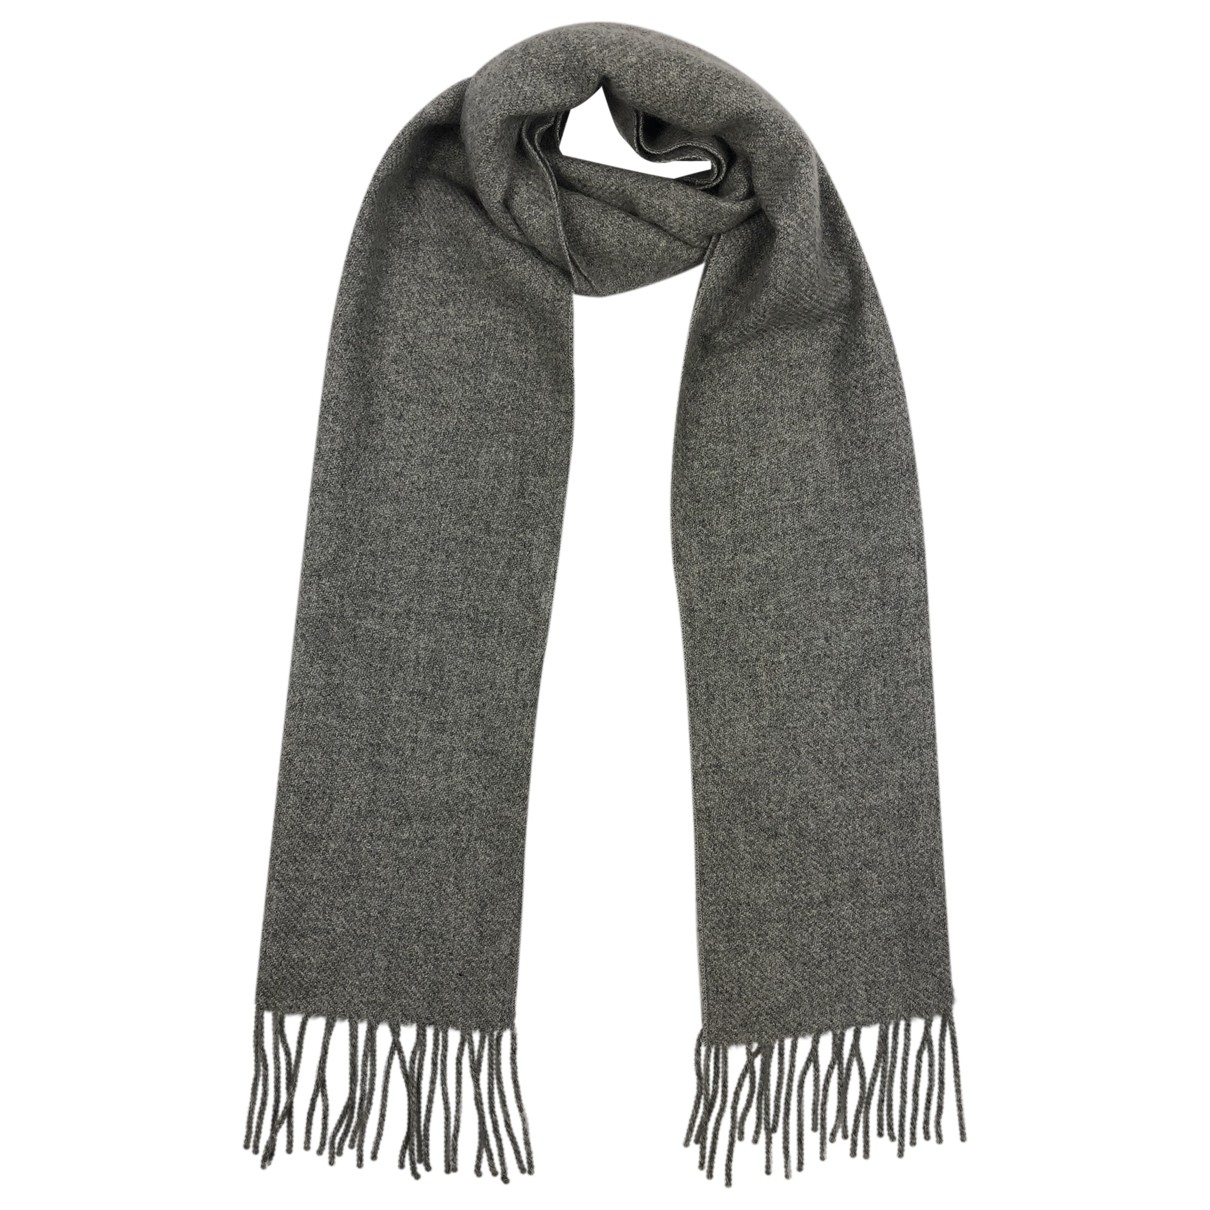 Moschino Cheap And Chic \N Grey scarf for Women \N